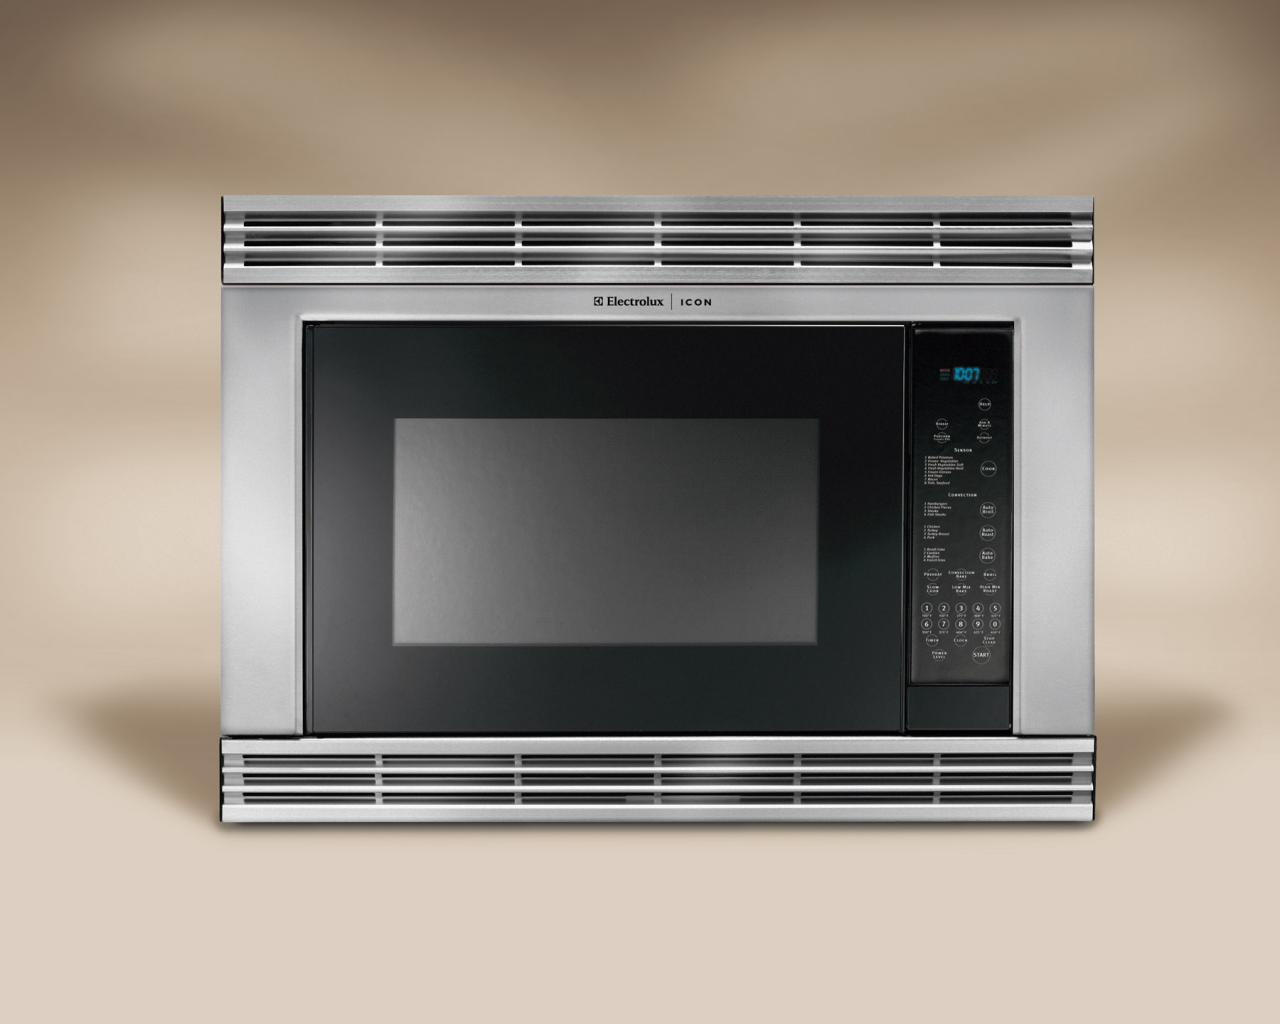 electrolux icon® designer series 1 5 cu  ft  stainless steel built in  microwave-e30mo65gss | tee vax home appliance & kitchen center